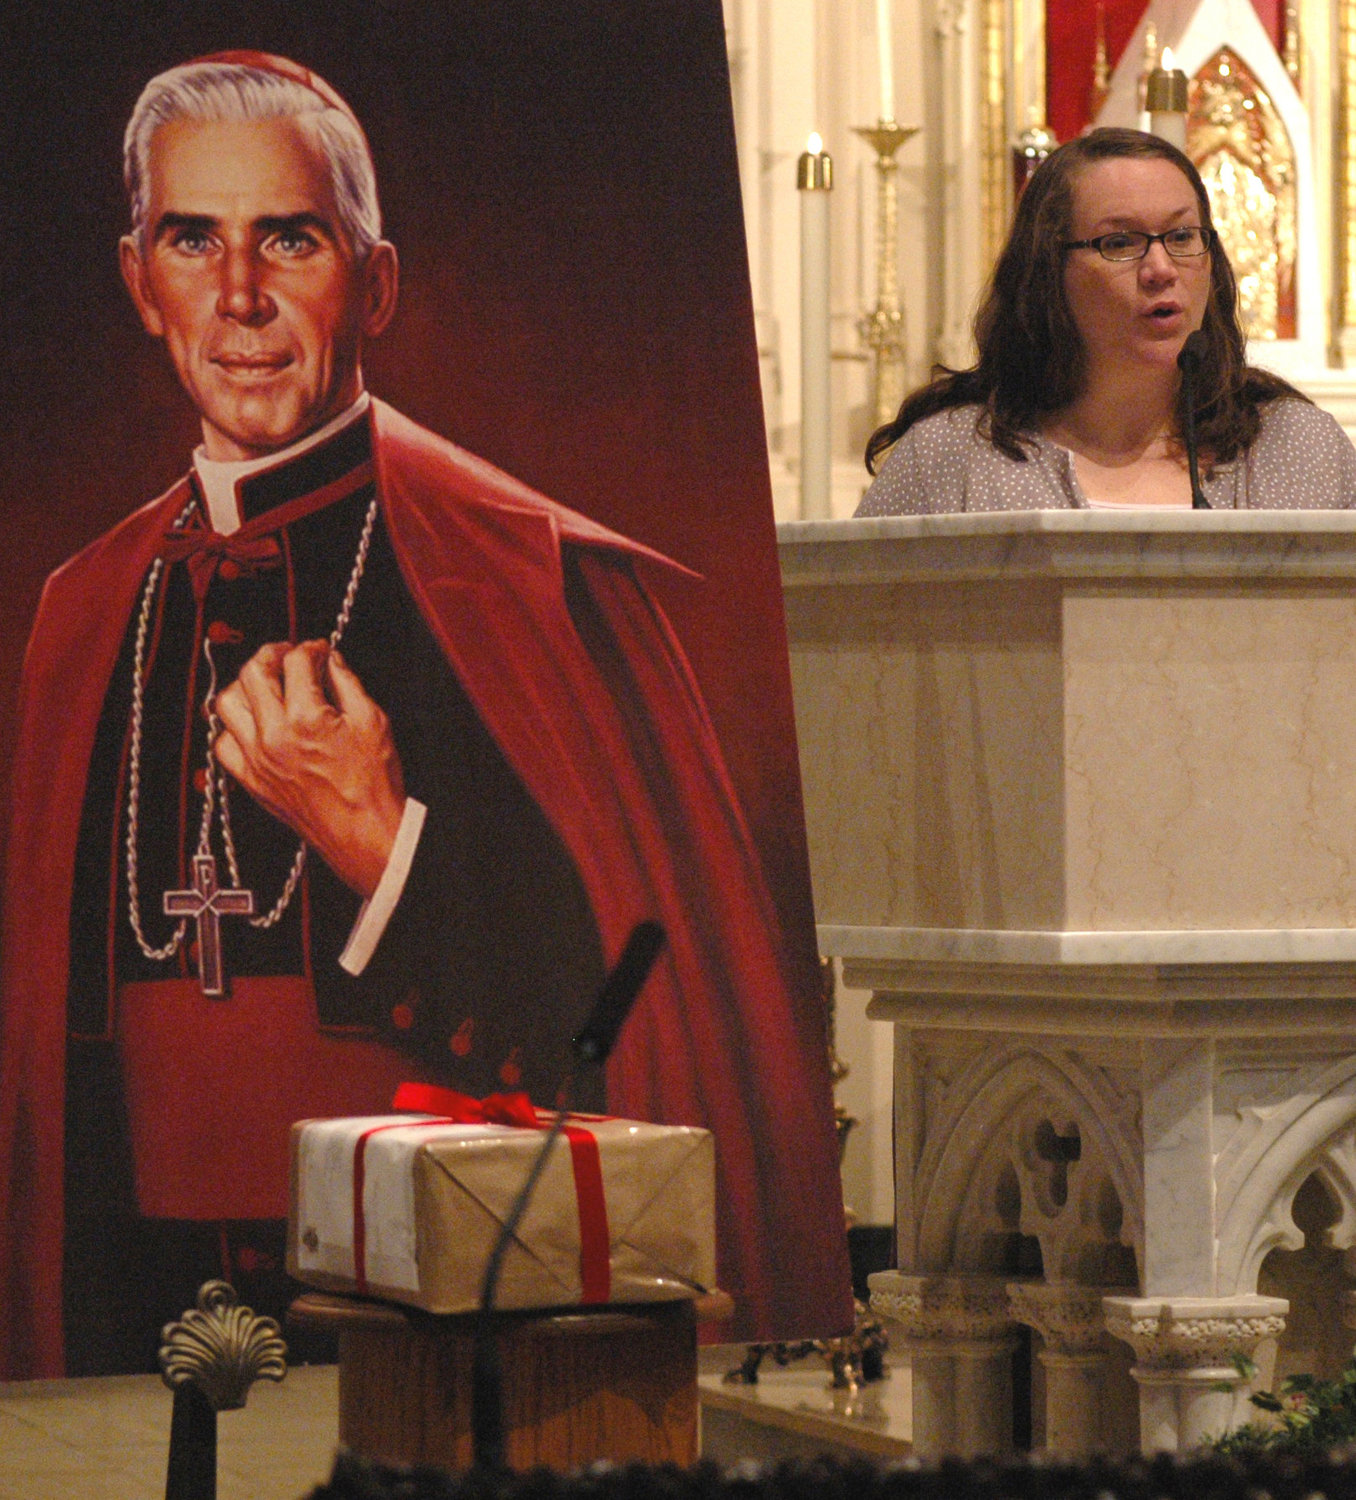 With evidence of her son's alleged miraculous healing boxed and sealed in front of a portrait of Archbishop Fulton J. Sheen, Bonnie Engstrom delivers a reading during Mass at St. Mary's Cathedral in Peoria, Ill., Dec. 10, 2011. On July 5 of this year, Pope Francis formally approved the miracle attributed to the intercession of Archbishop Sheen, moving him one step closer to beatification.